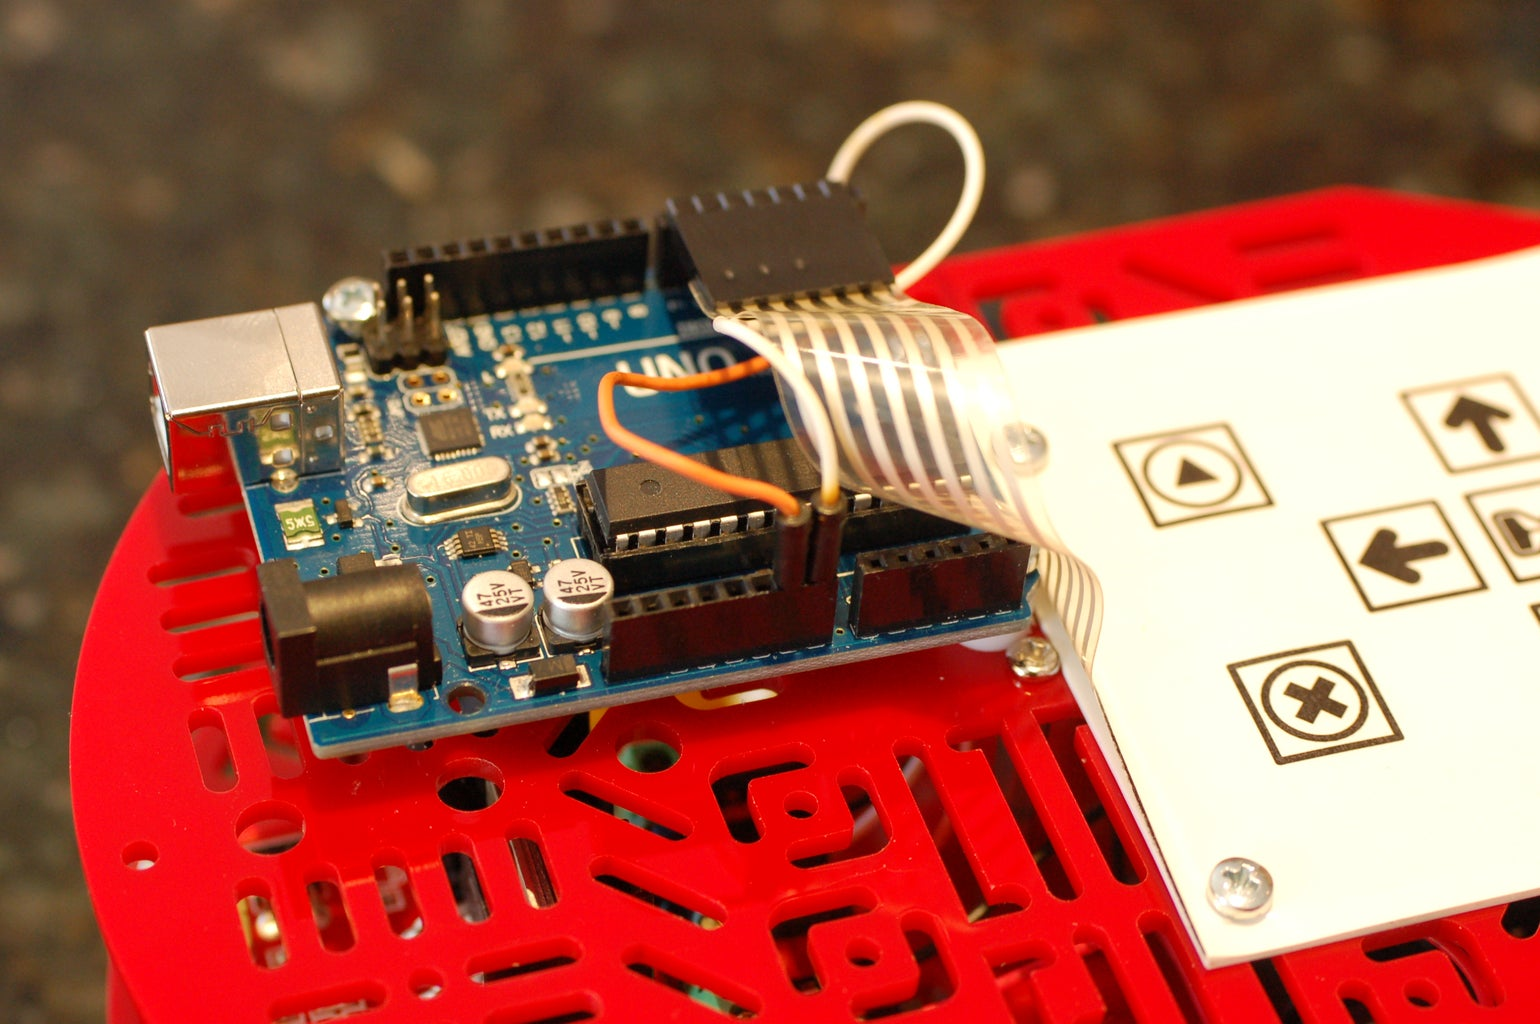 Attach the Motor Driver Wires to the Ardunio